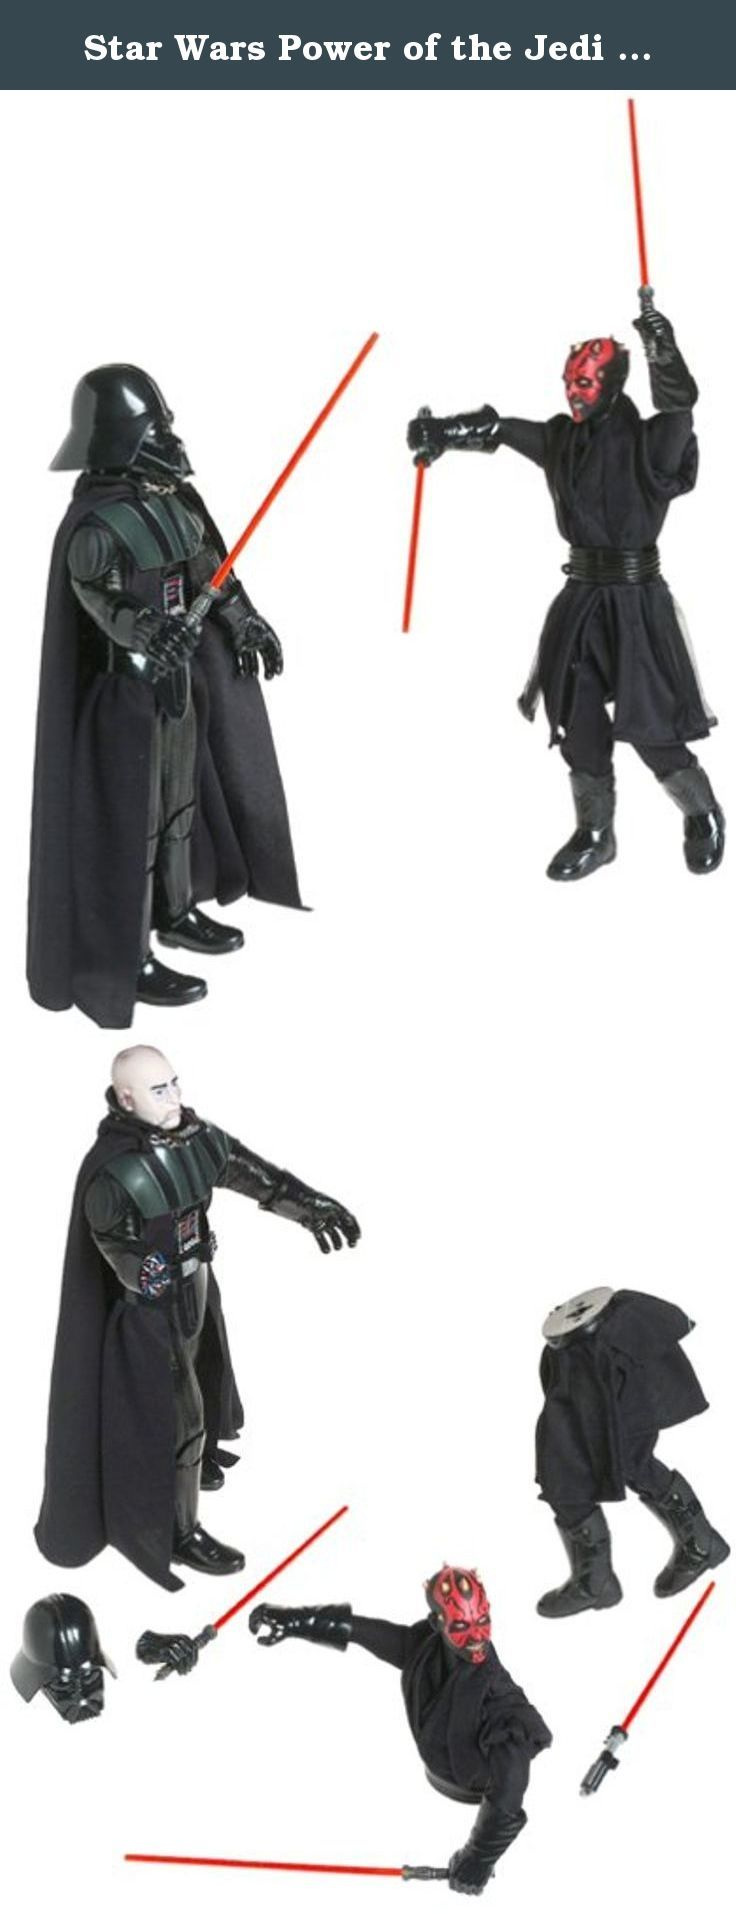 """Star Wars Power of the Jedi 12"""" Action Figure - Sith Lords - Darth Vader & Darth Maul 2-Figure Set. Star Wars 2000 Power of The Jedi 2 Pack 12 Inch Tall Action Figures Set - SITH LORDS - Darth Vader with Red Lightsaber, Helmet and Removable Right Hand Plus Darth Maul with Double-Bladed Lightsaber and Separable Body."""